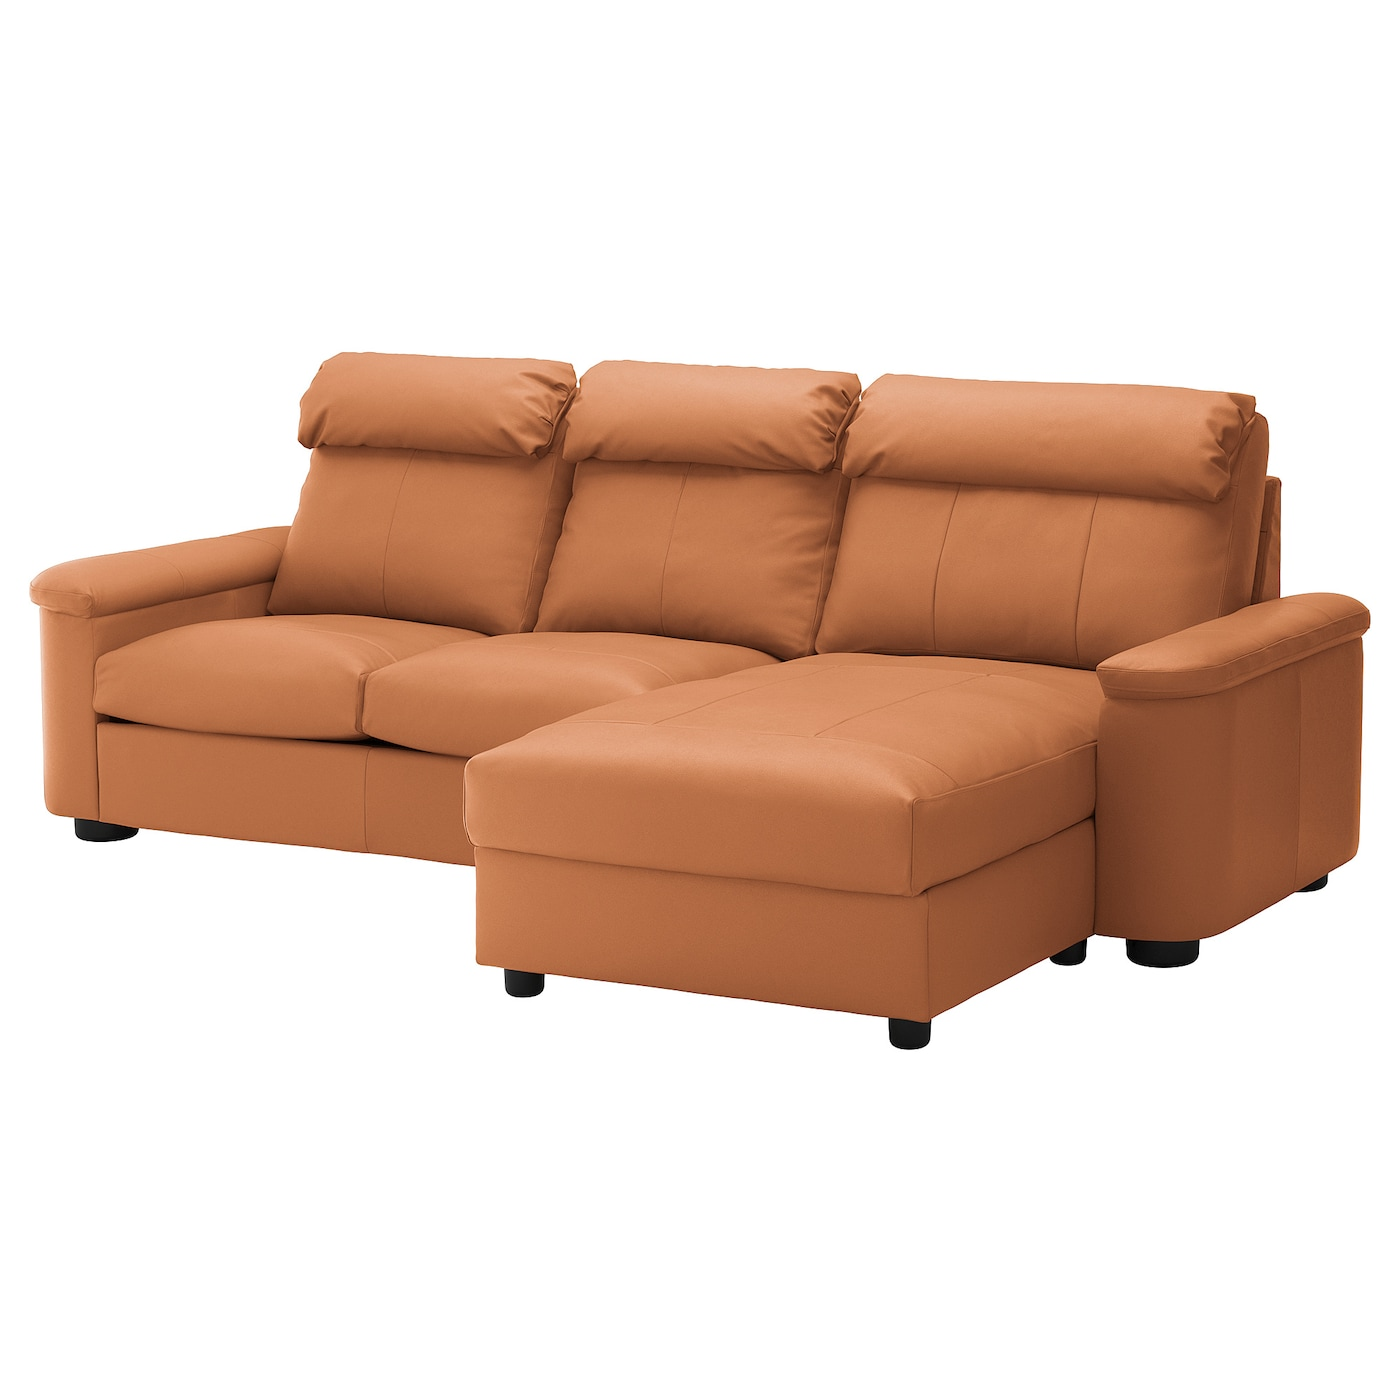 Ikea Lidhult 3 Seat Sofa 10 Year Guarantee Read About The Terms In